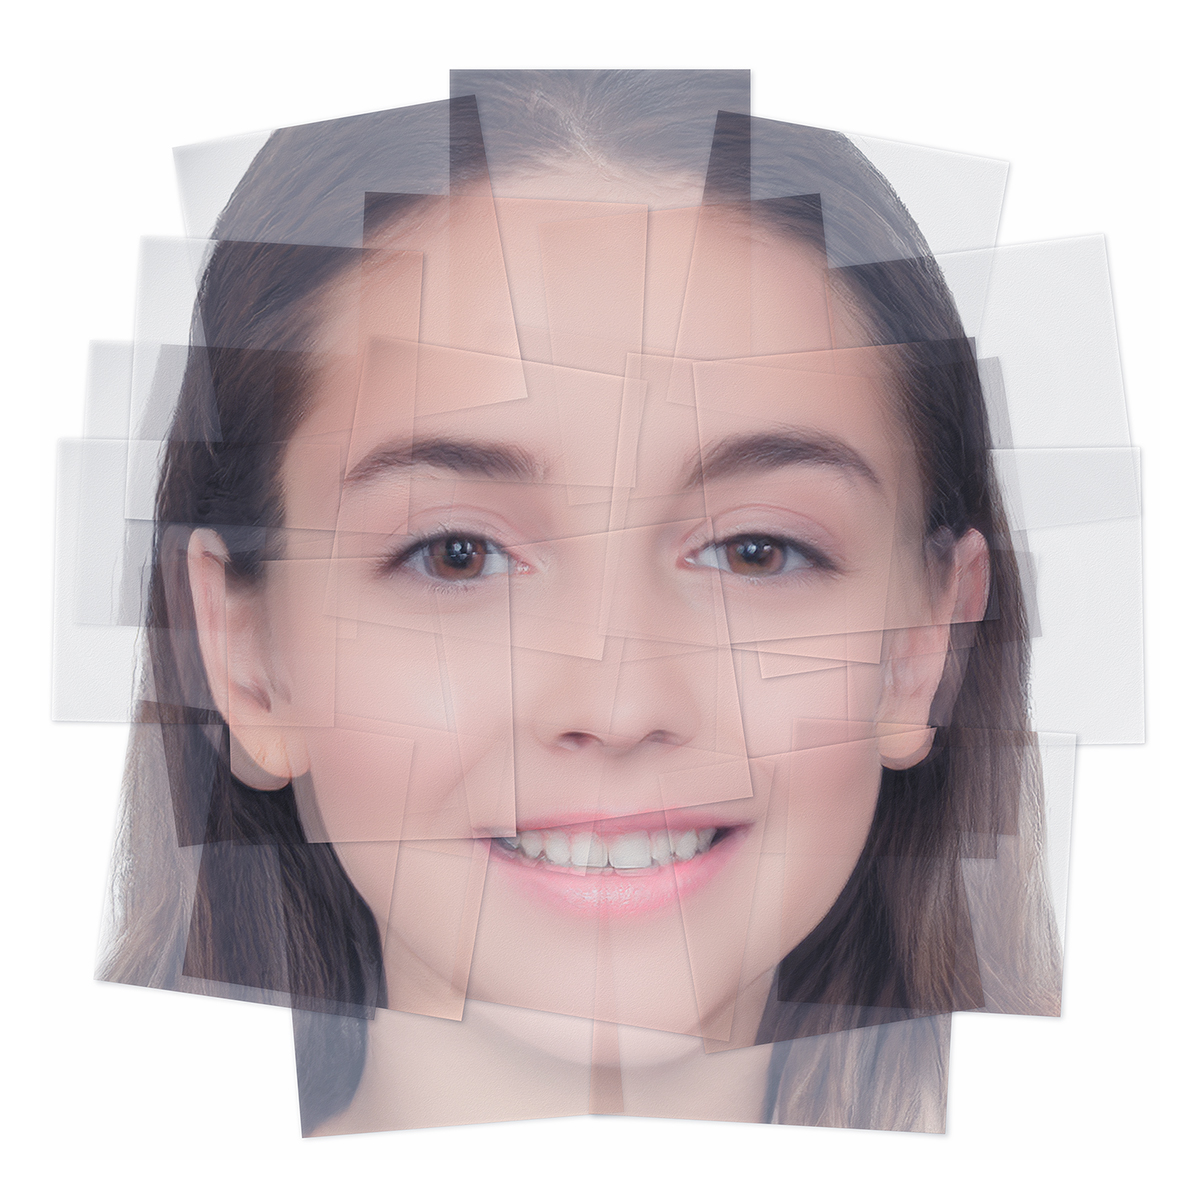 Generated Faces by Artificial Intelligence Teens 003 1 - 2019 - Generated Faces by Artificial Intelligence. Teens. V1